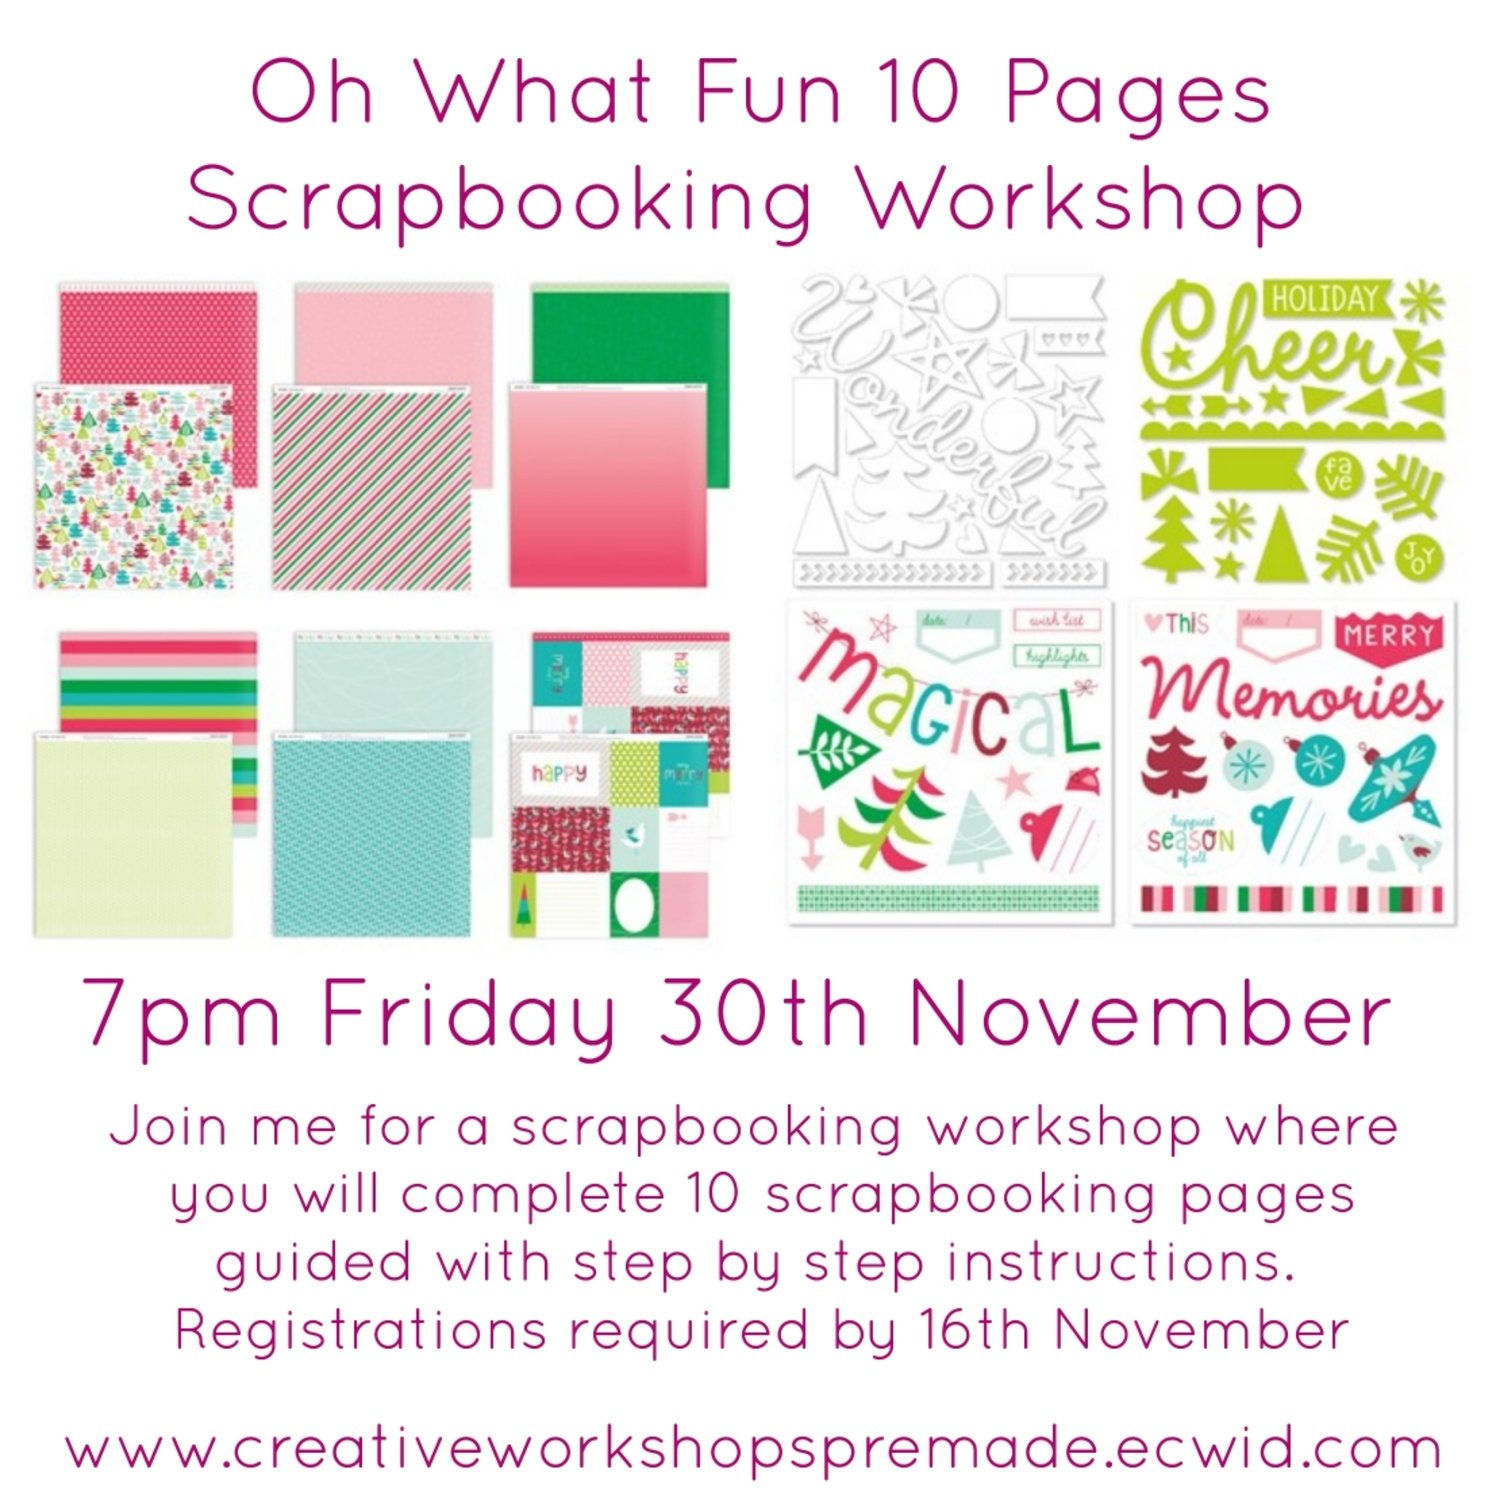 10 Pages Scrapbooking Workshop Oh What Fun 30th November